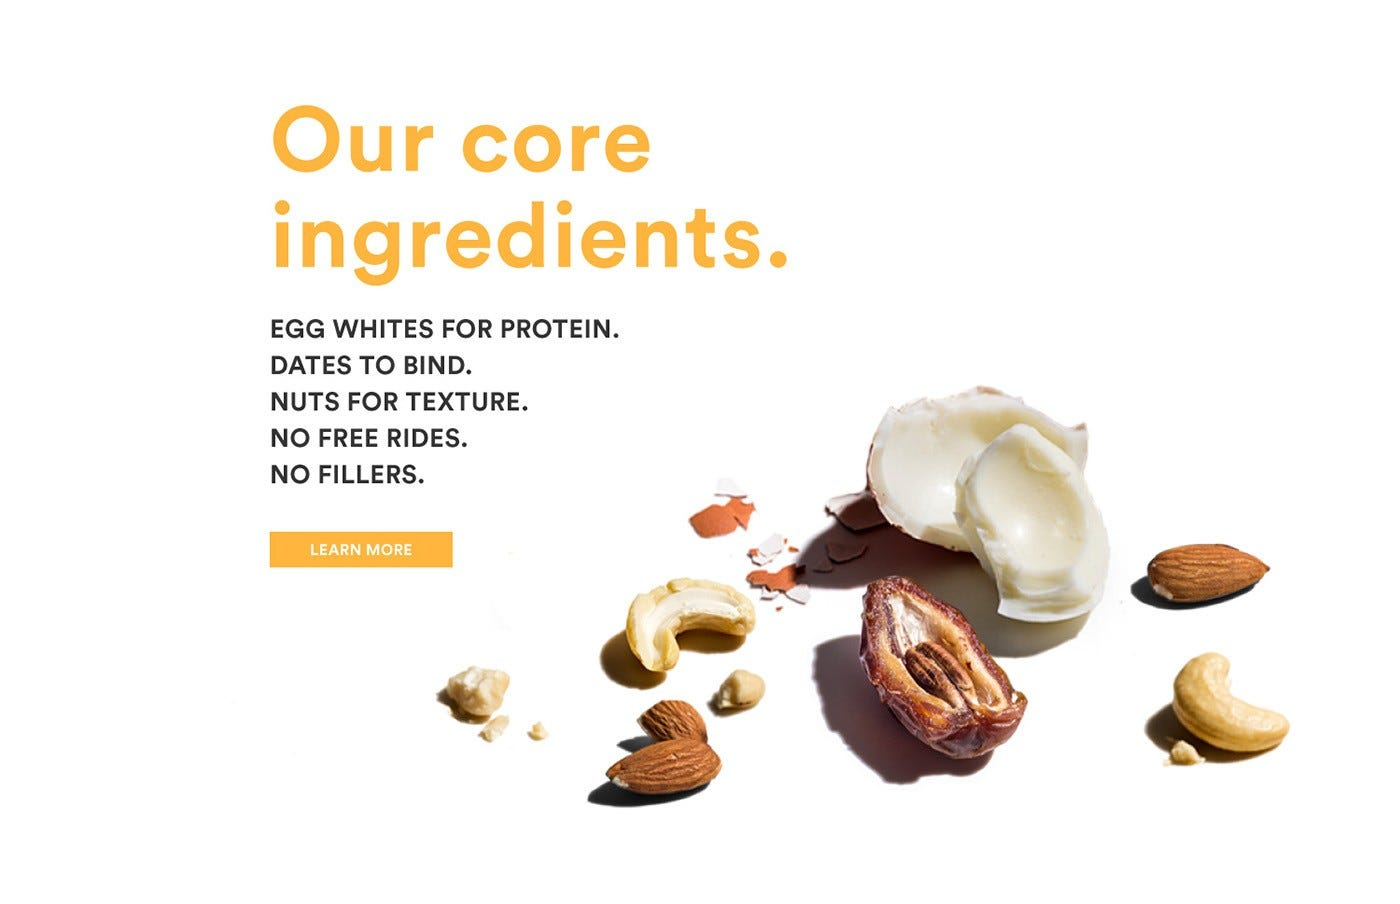 RXBAR Core Ingredients: Egg whites for protein. Dates to bind. Nuts for texture. No free rides. No fillers